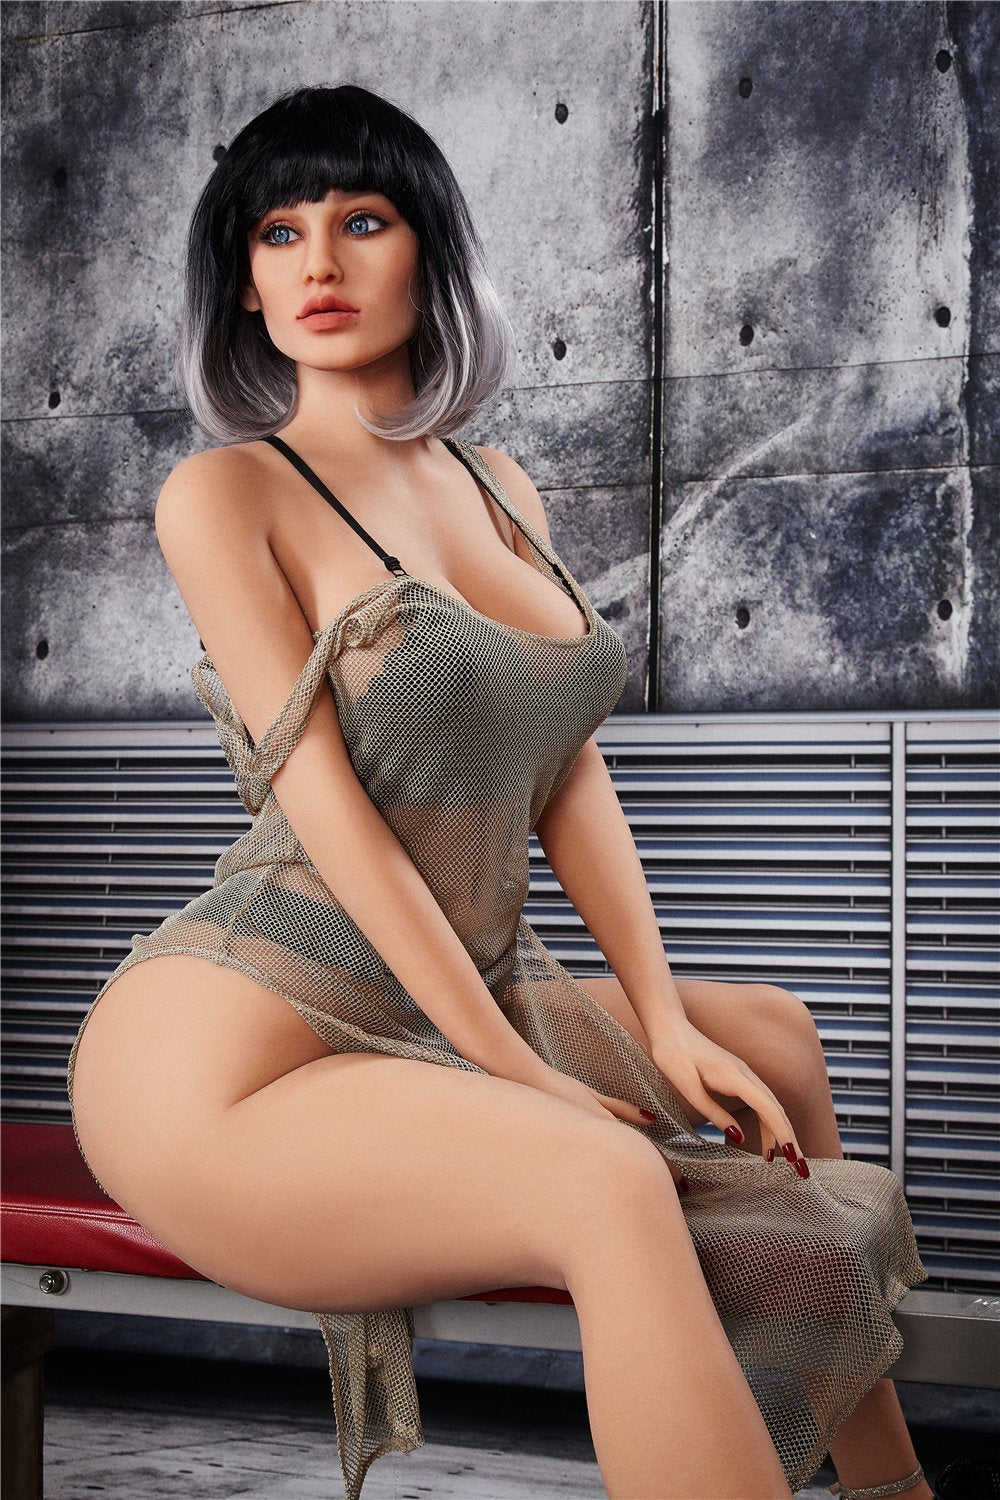 arlene 170cm black hair curvy medium tits tpe bbw sex doll